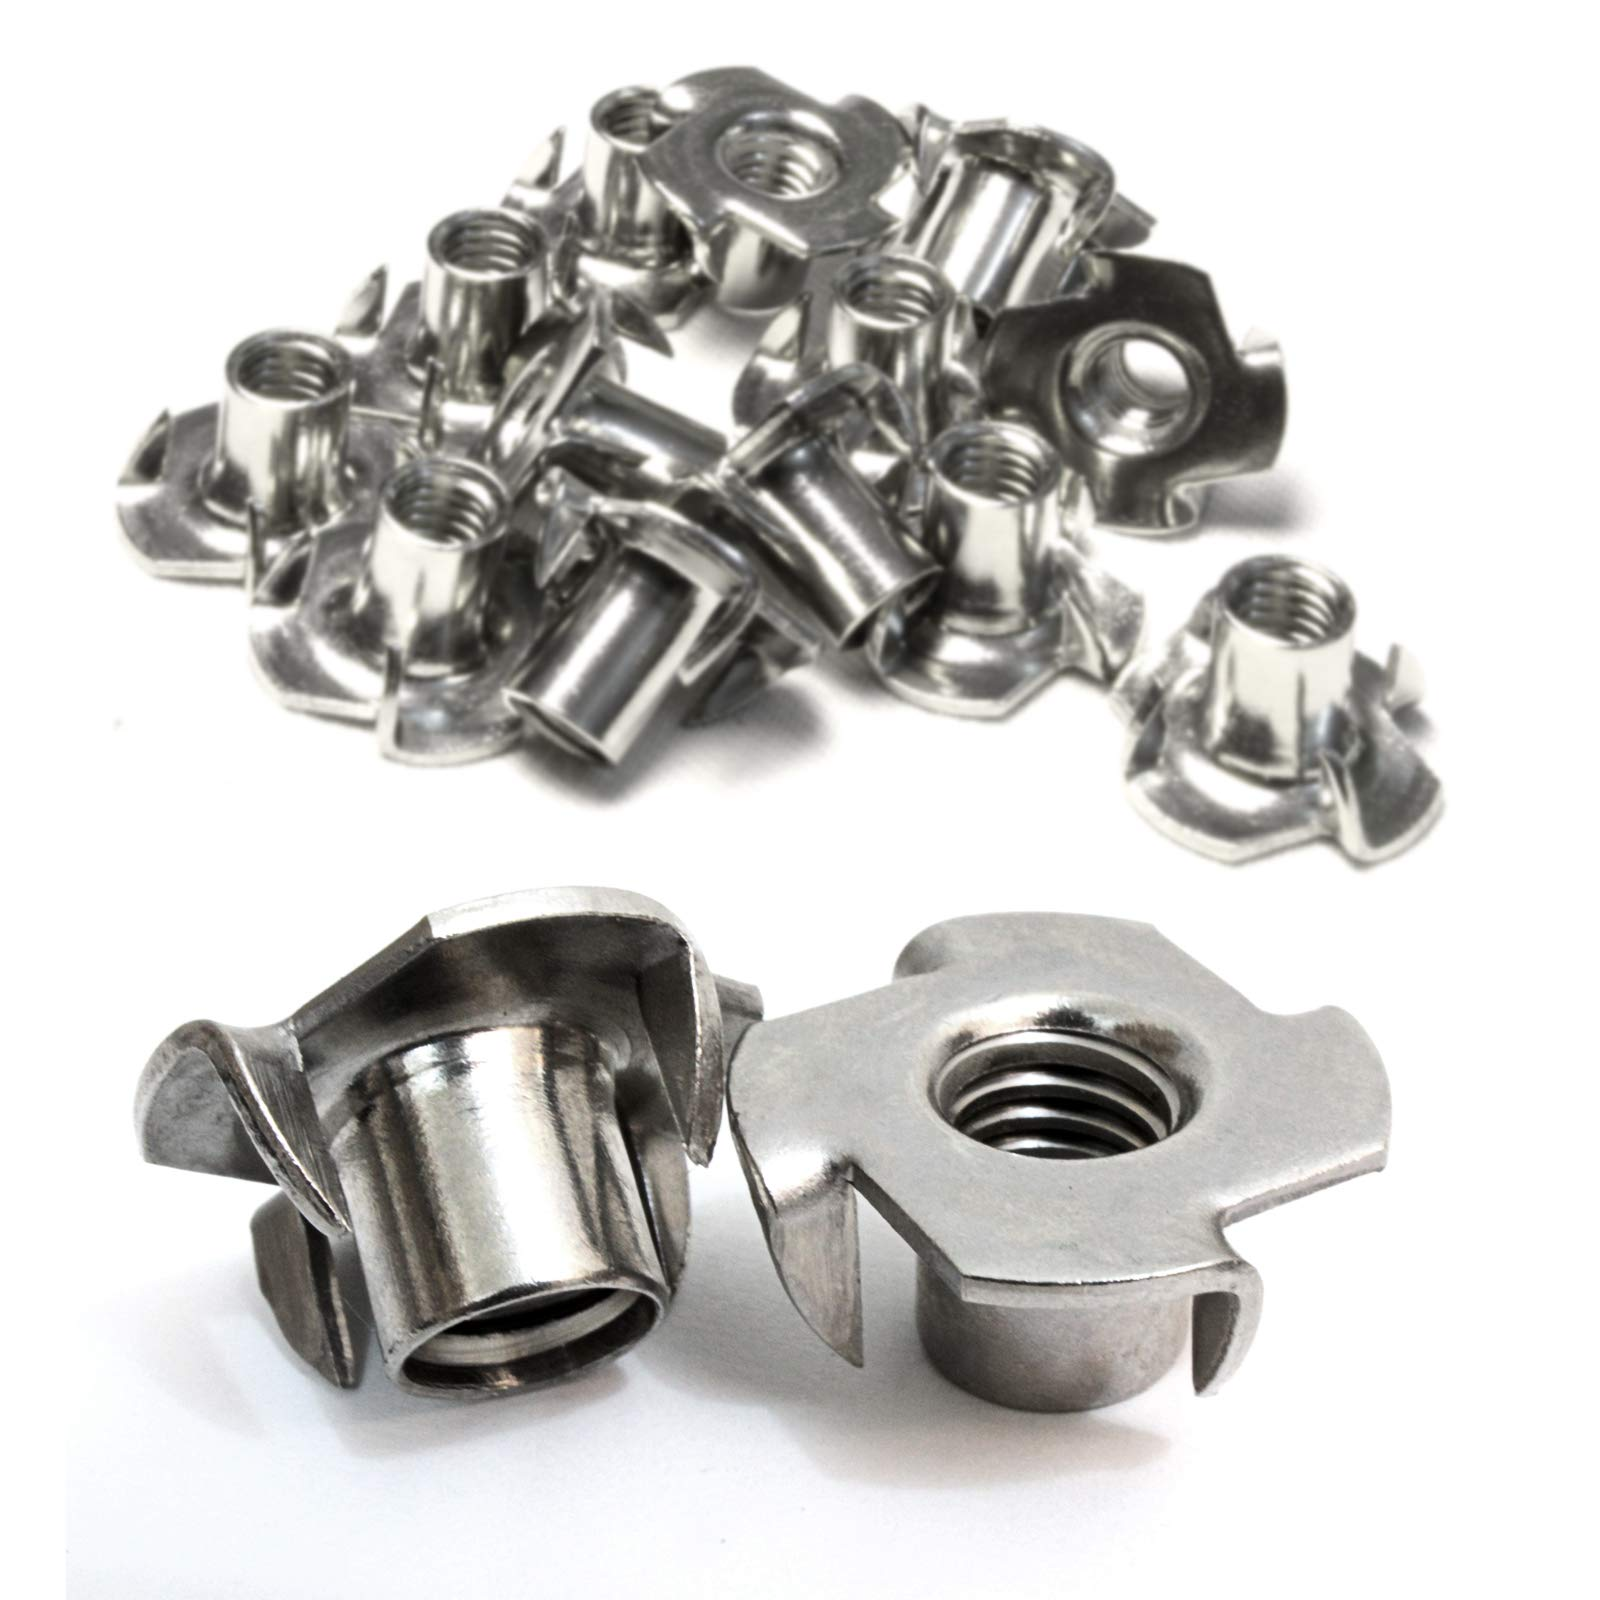 Pronged Tee Nut by Bolt Dropper for Wood 3//8-16 x 7//16 25 Pack Rock Climbing Holds, 304 Choose Size//Quantity Stainless Steel Stainless T-Nuts 3//8-16 Inch 18-8 Threaded Insert